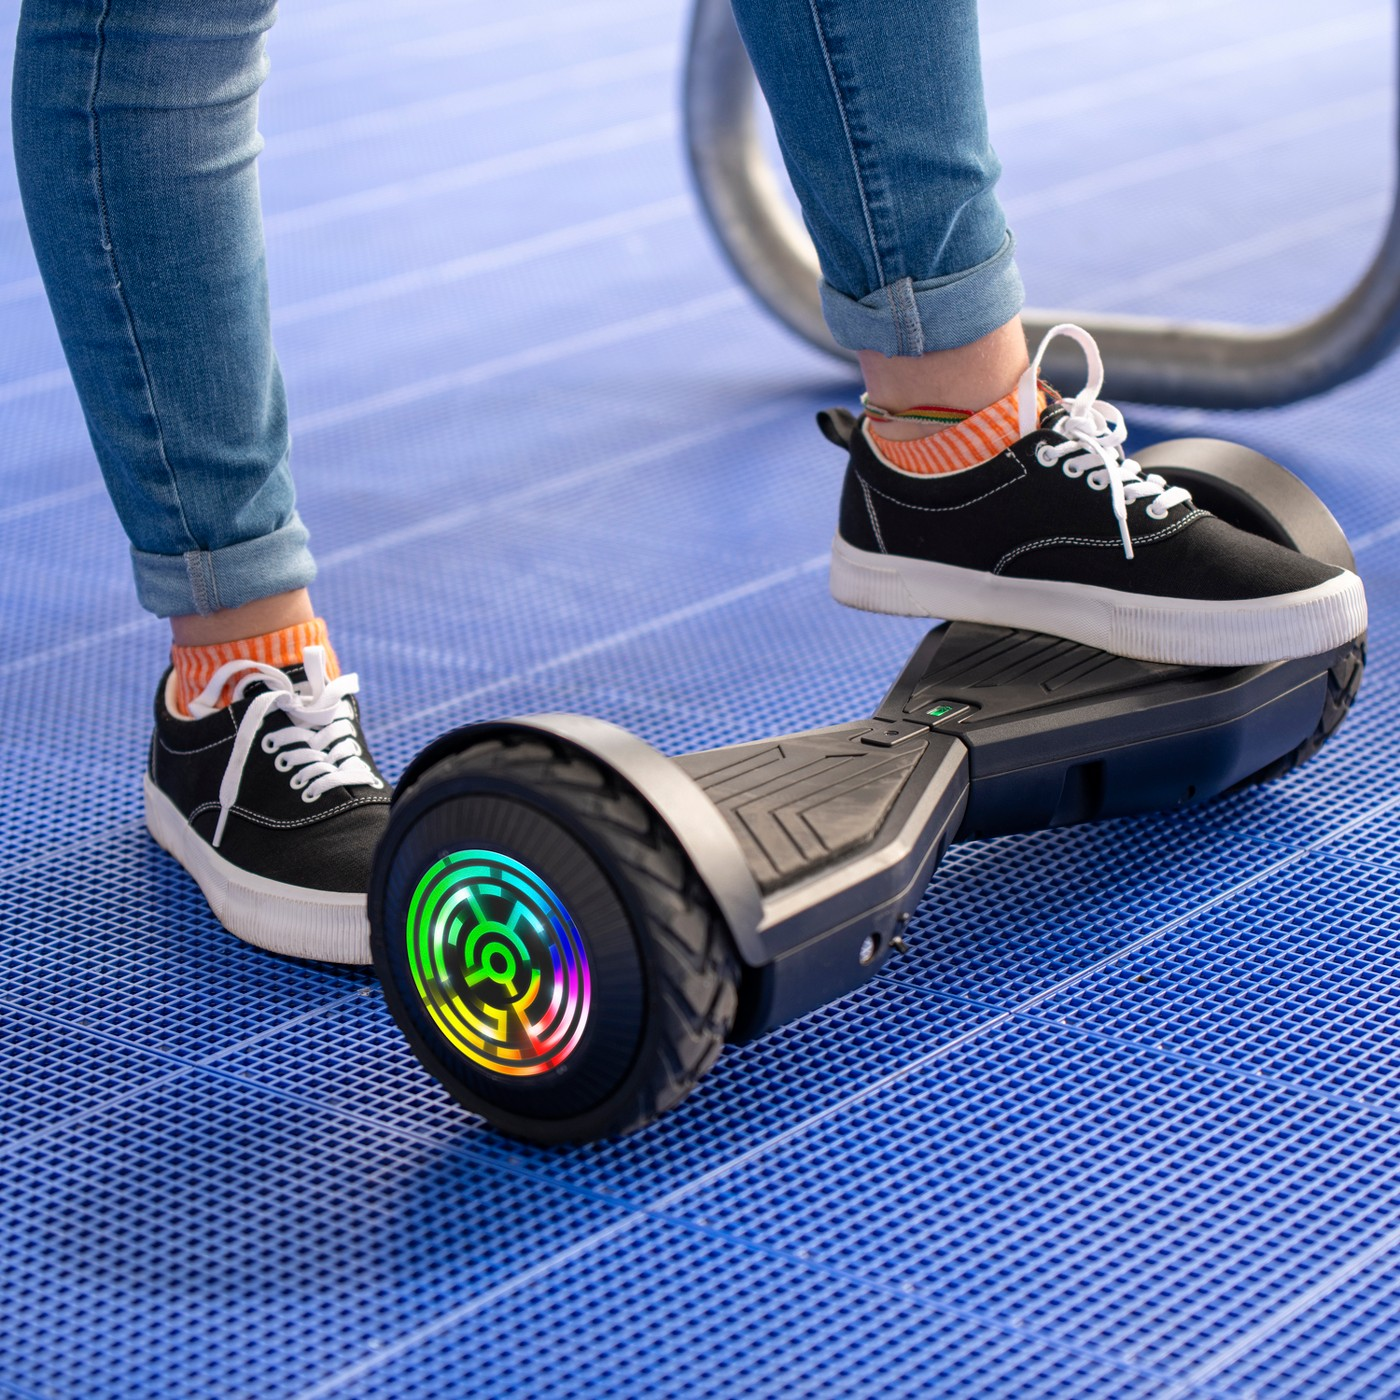 Cool gift ideas for tween girls: Jetsons Rogue Hoverboard